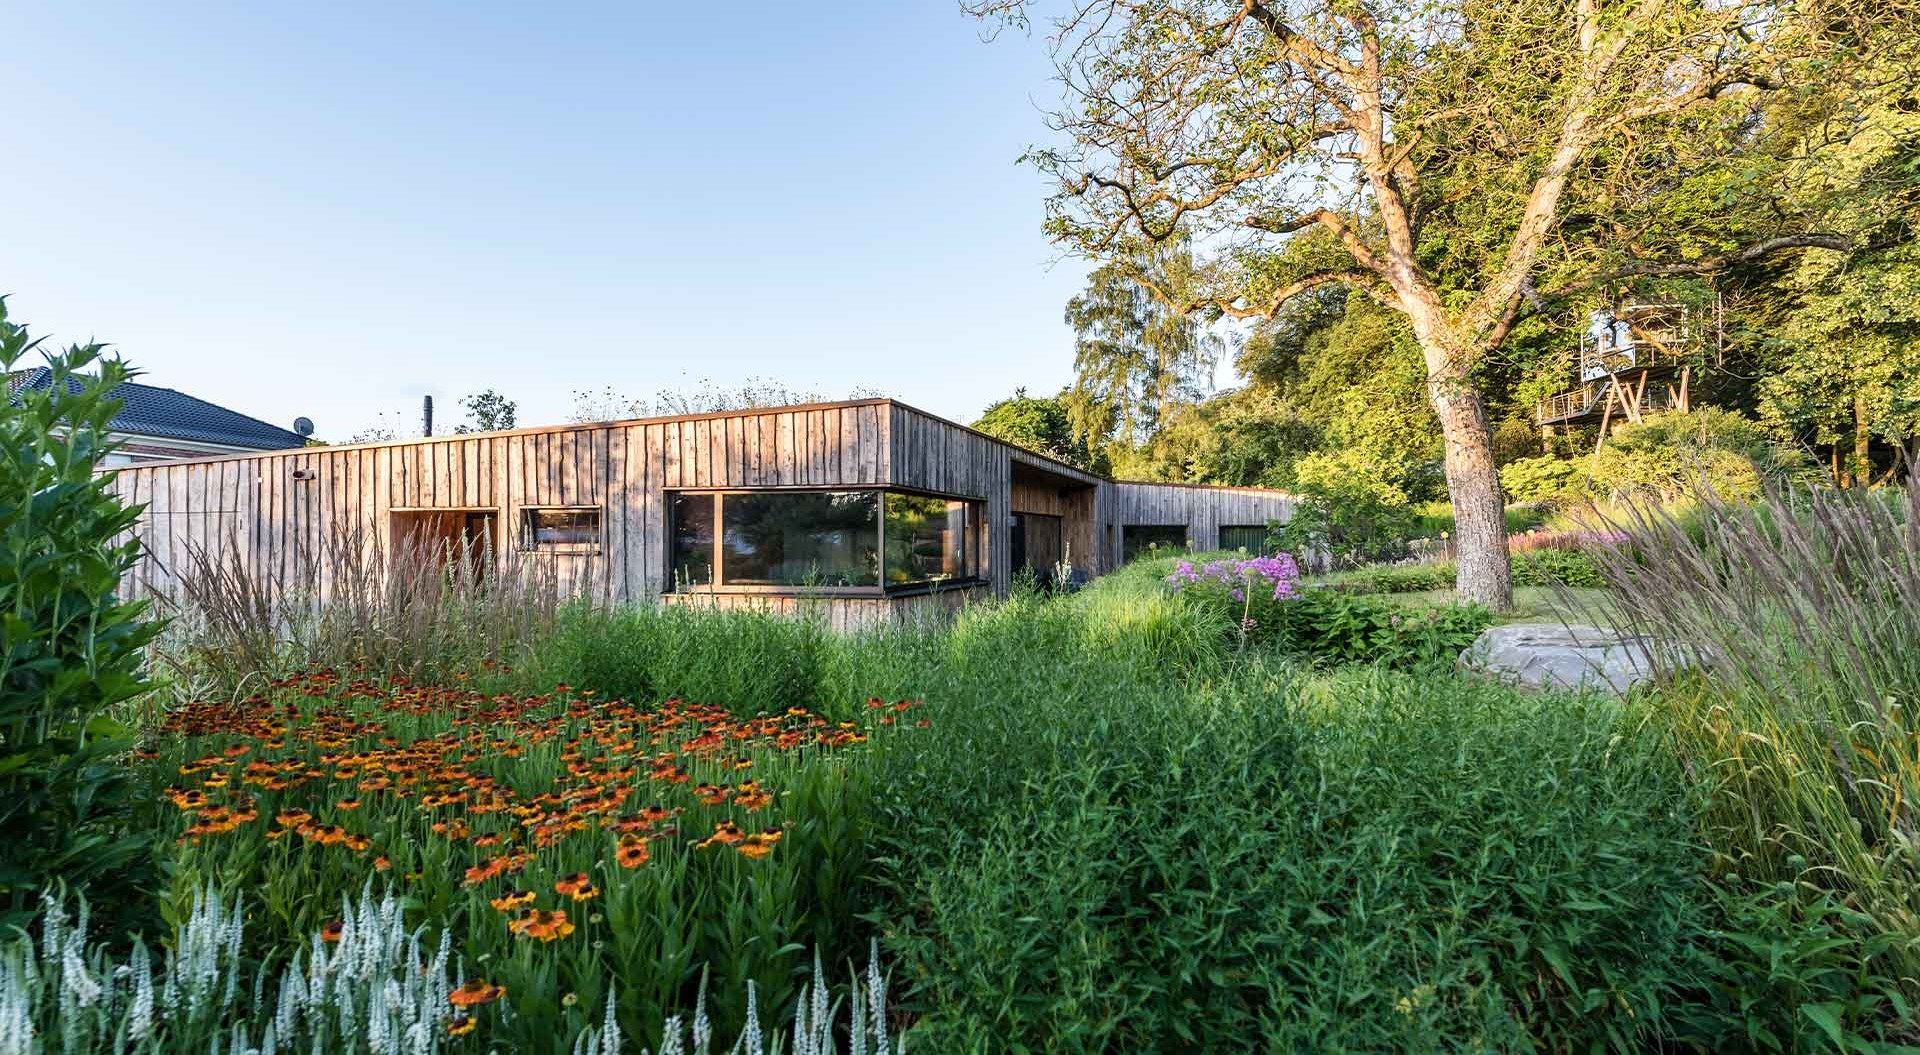 Wooden house in the middle of flower meadow and beautiful plants